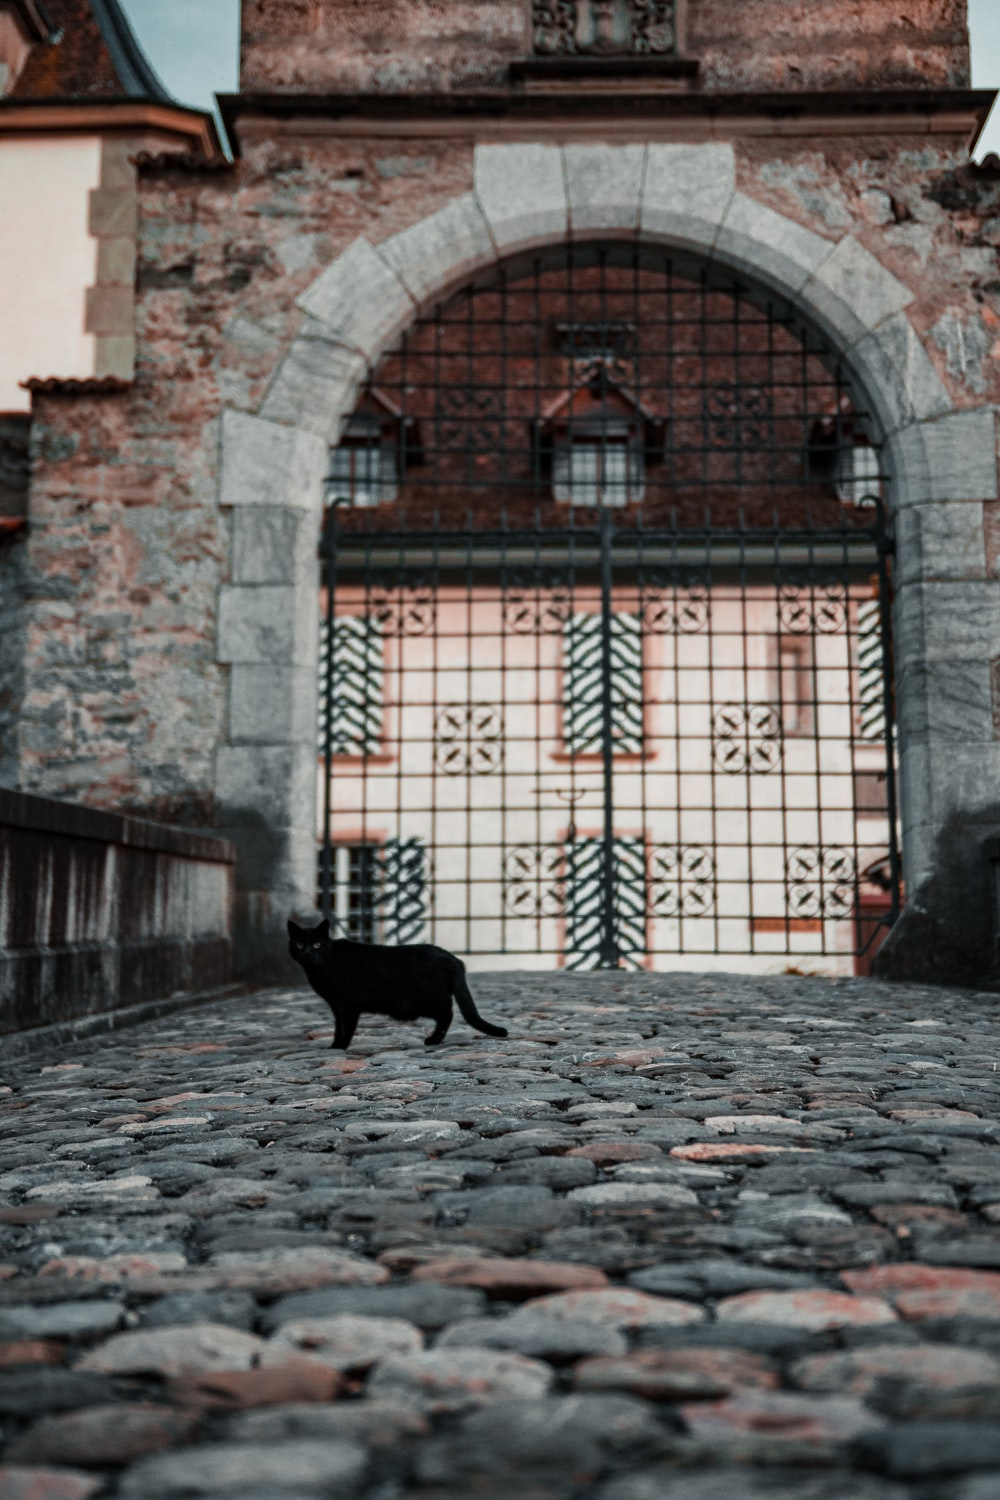 black cat near closed gate during day